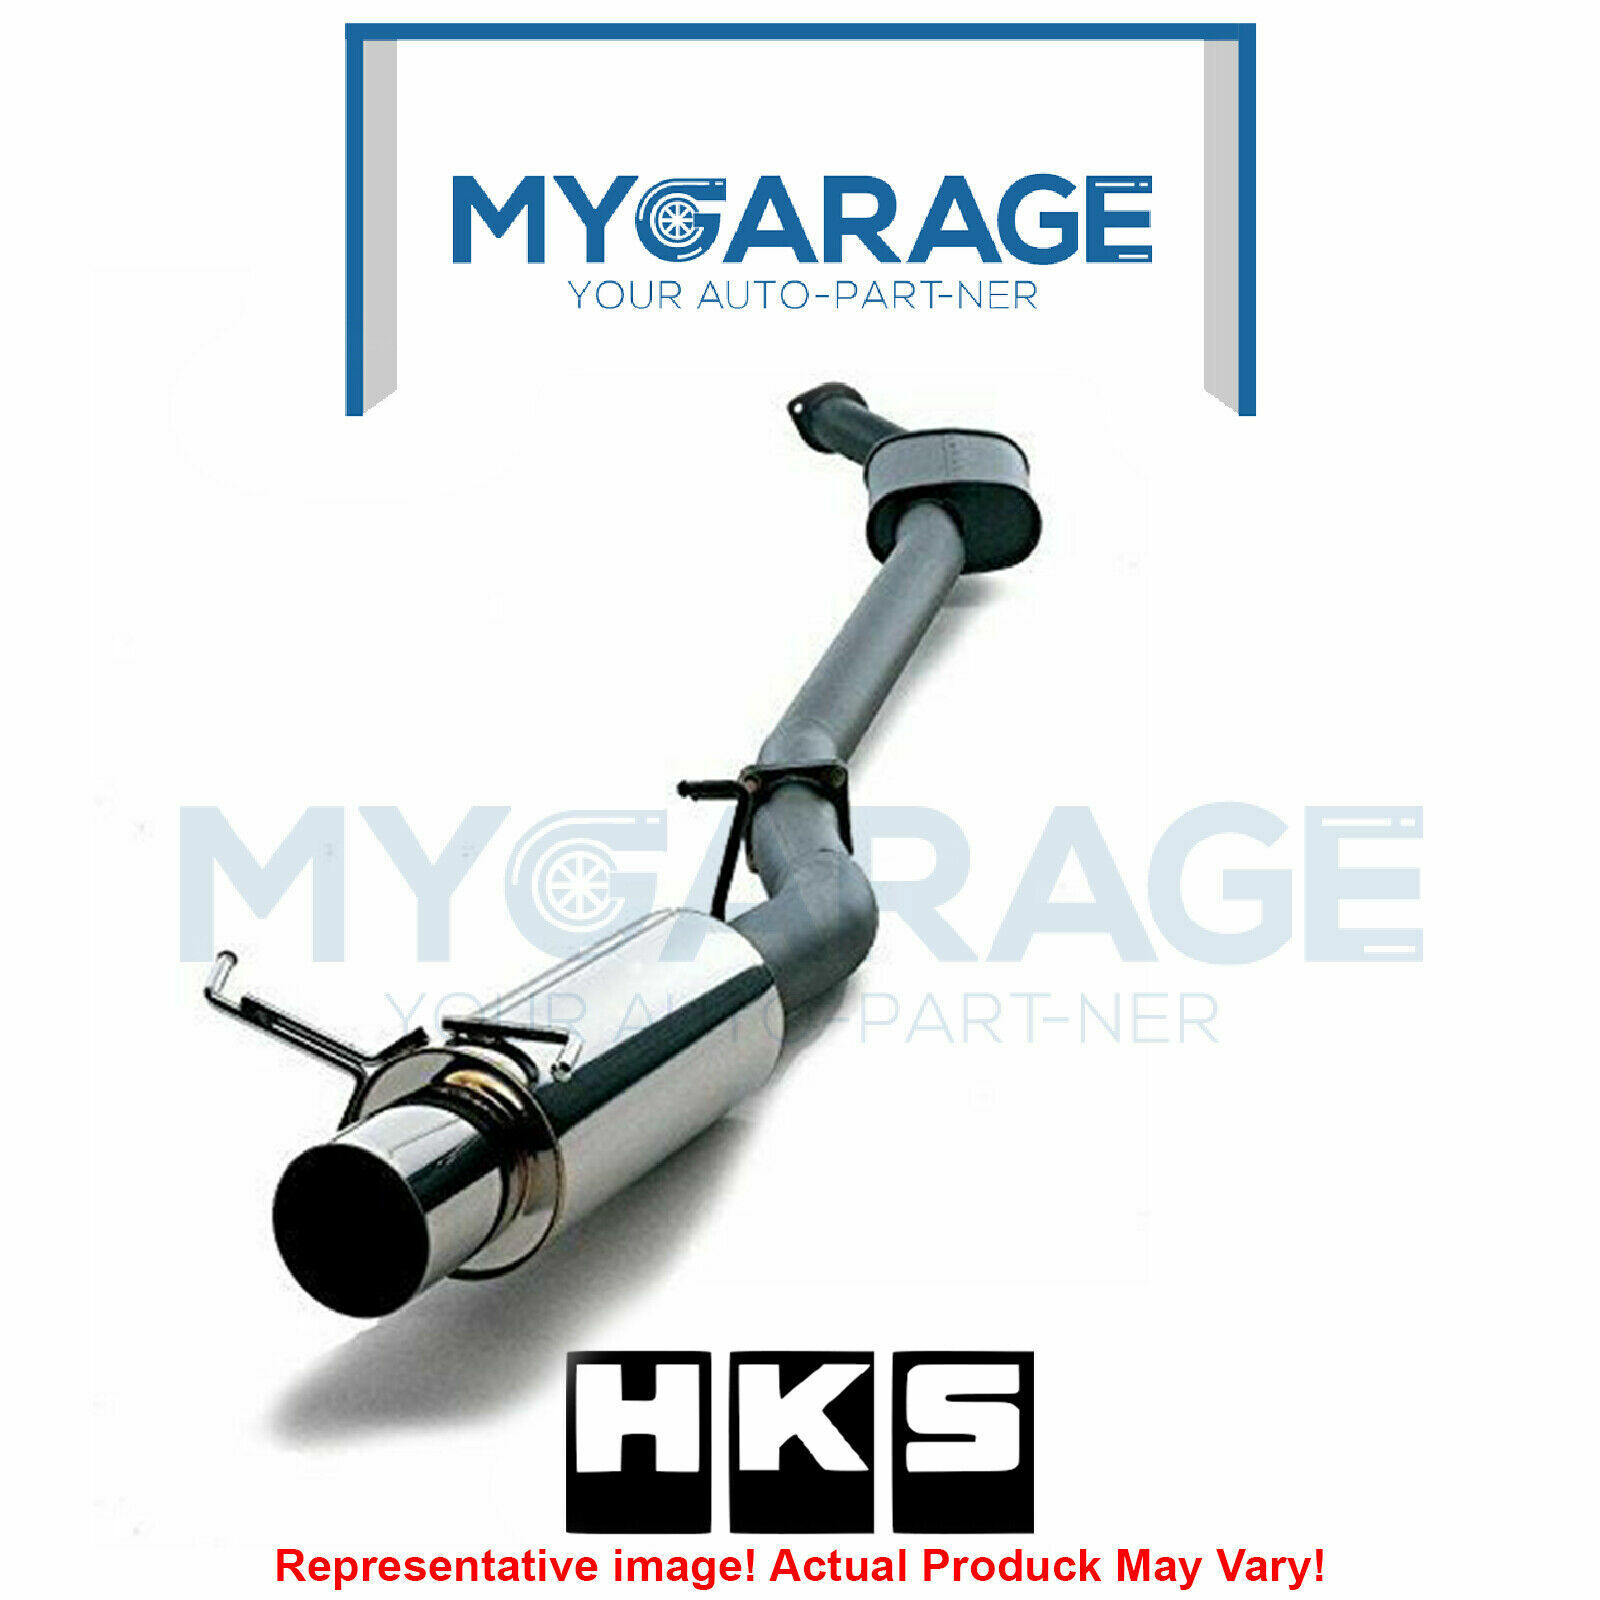 HKS 3203-EX008 Hi-Power Exhaust System For 92-93 Acura